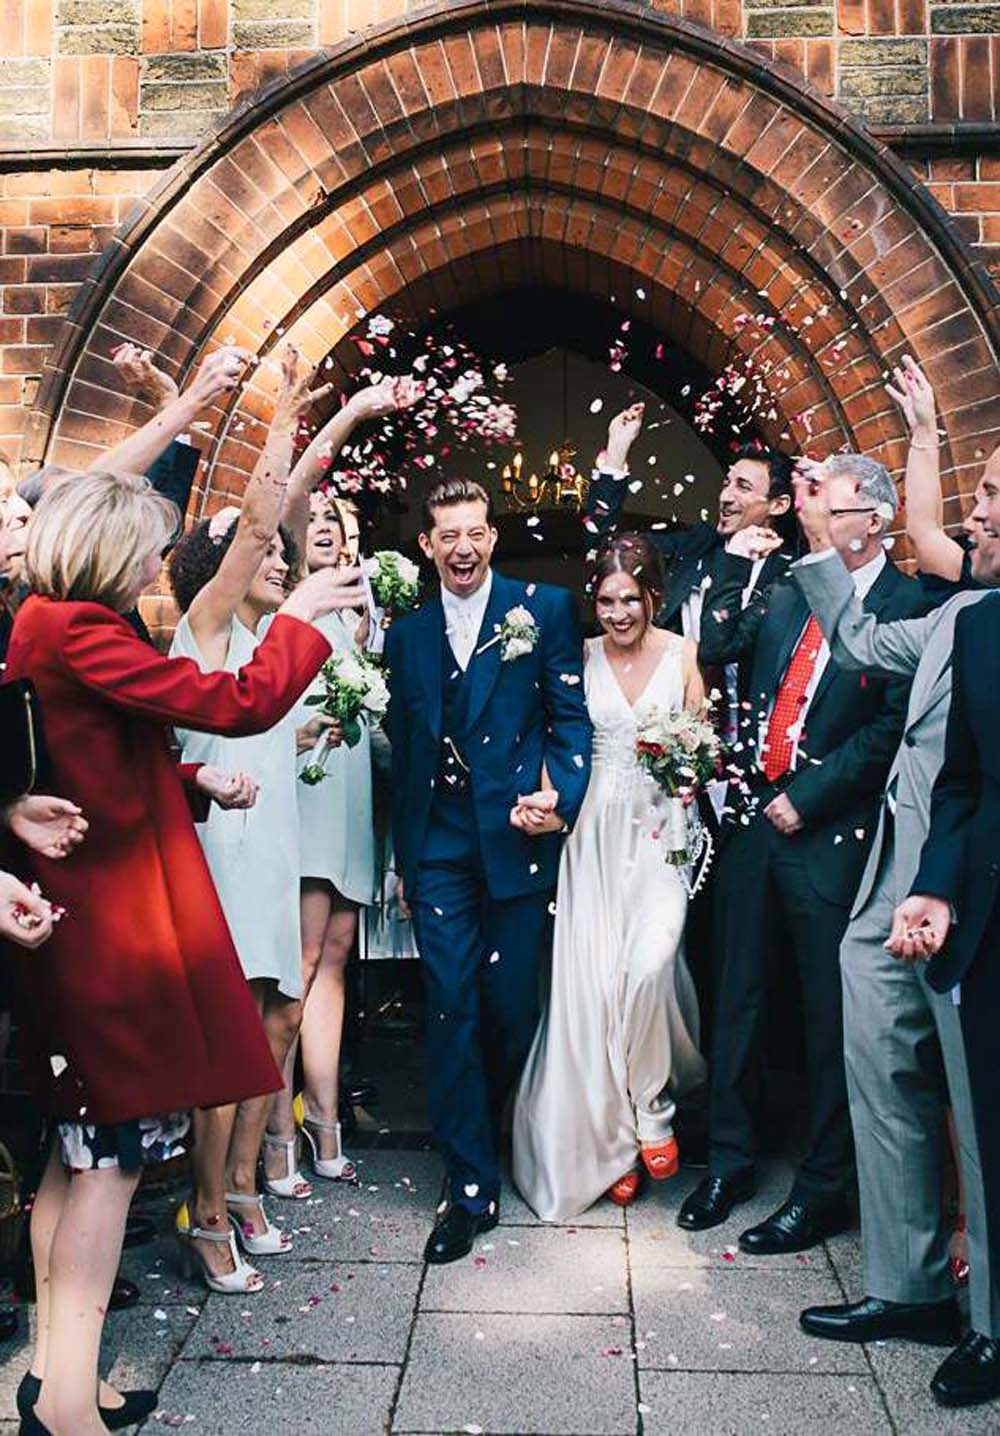 The confetti moment right outside the church door, with Rainbow Small Natural Rose Petals